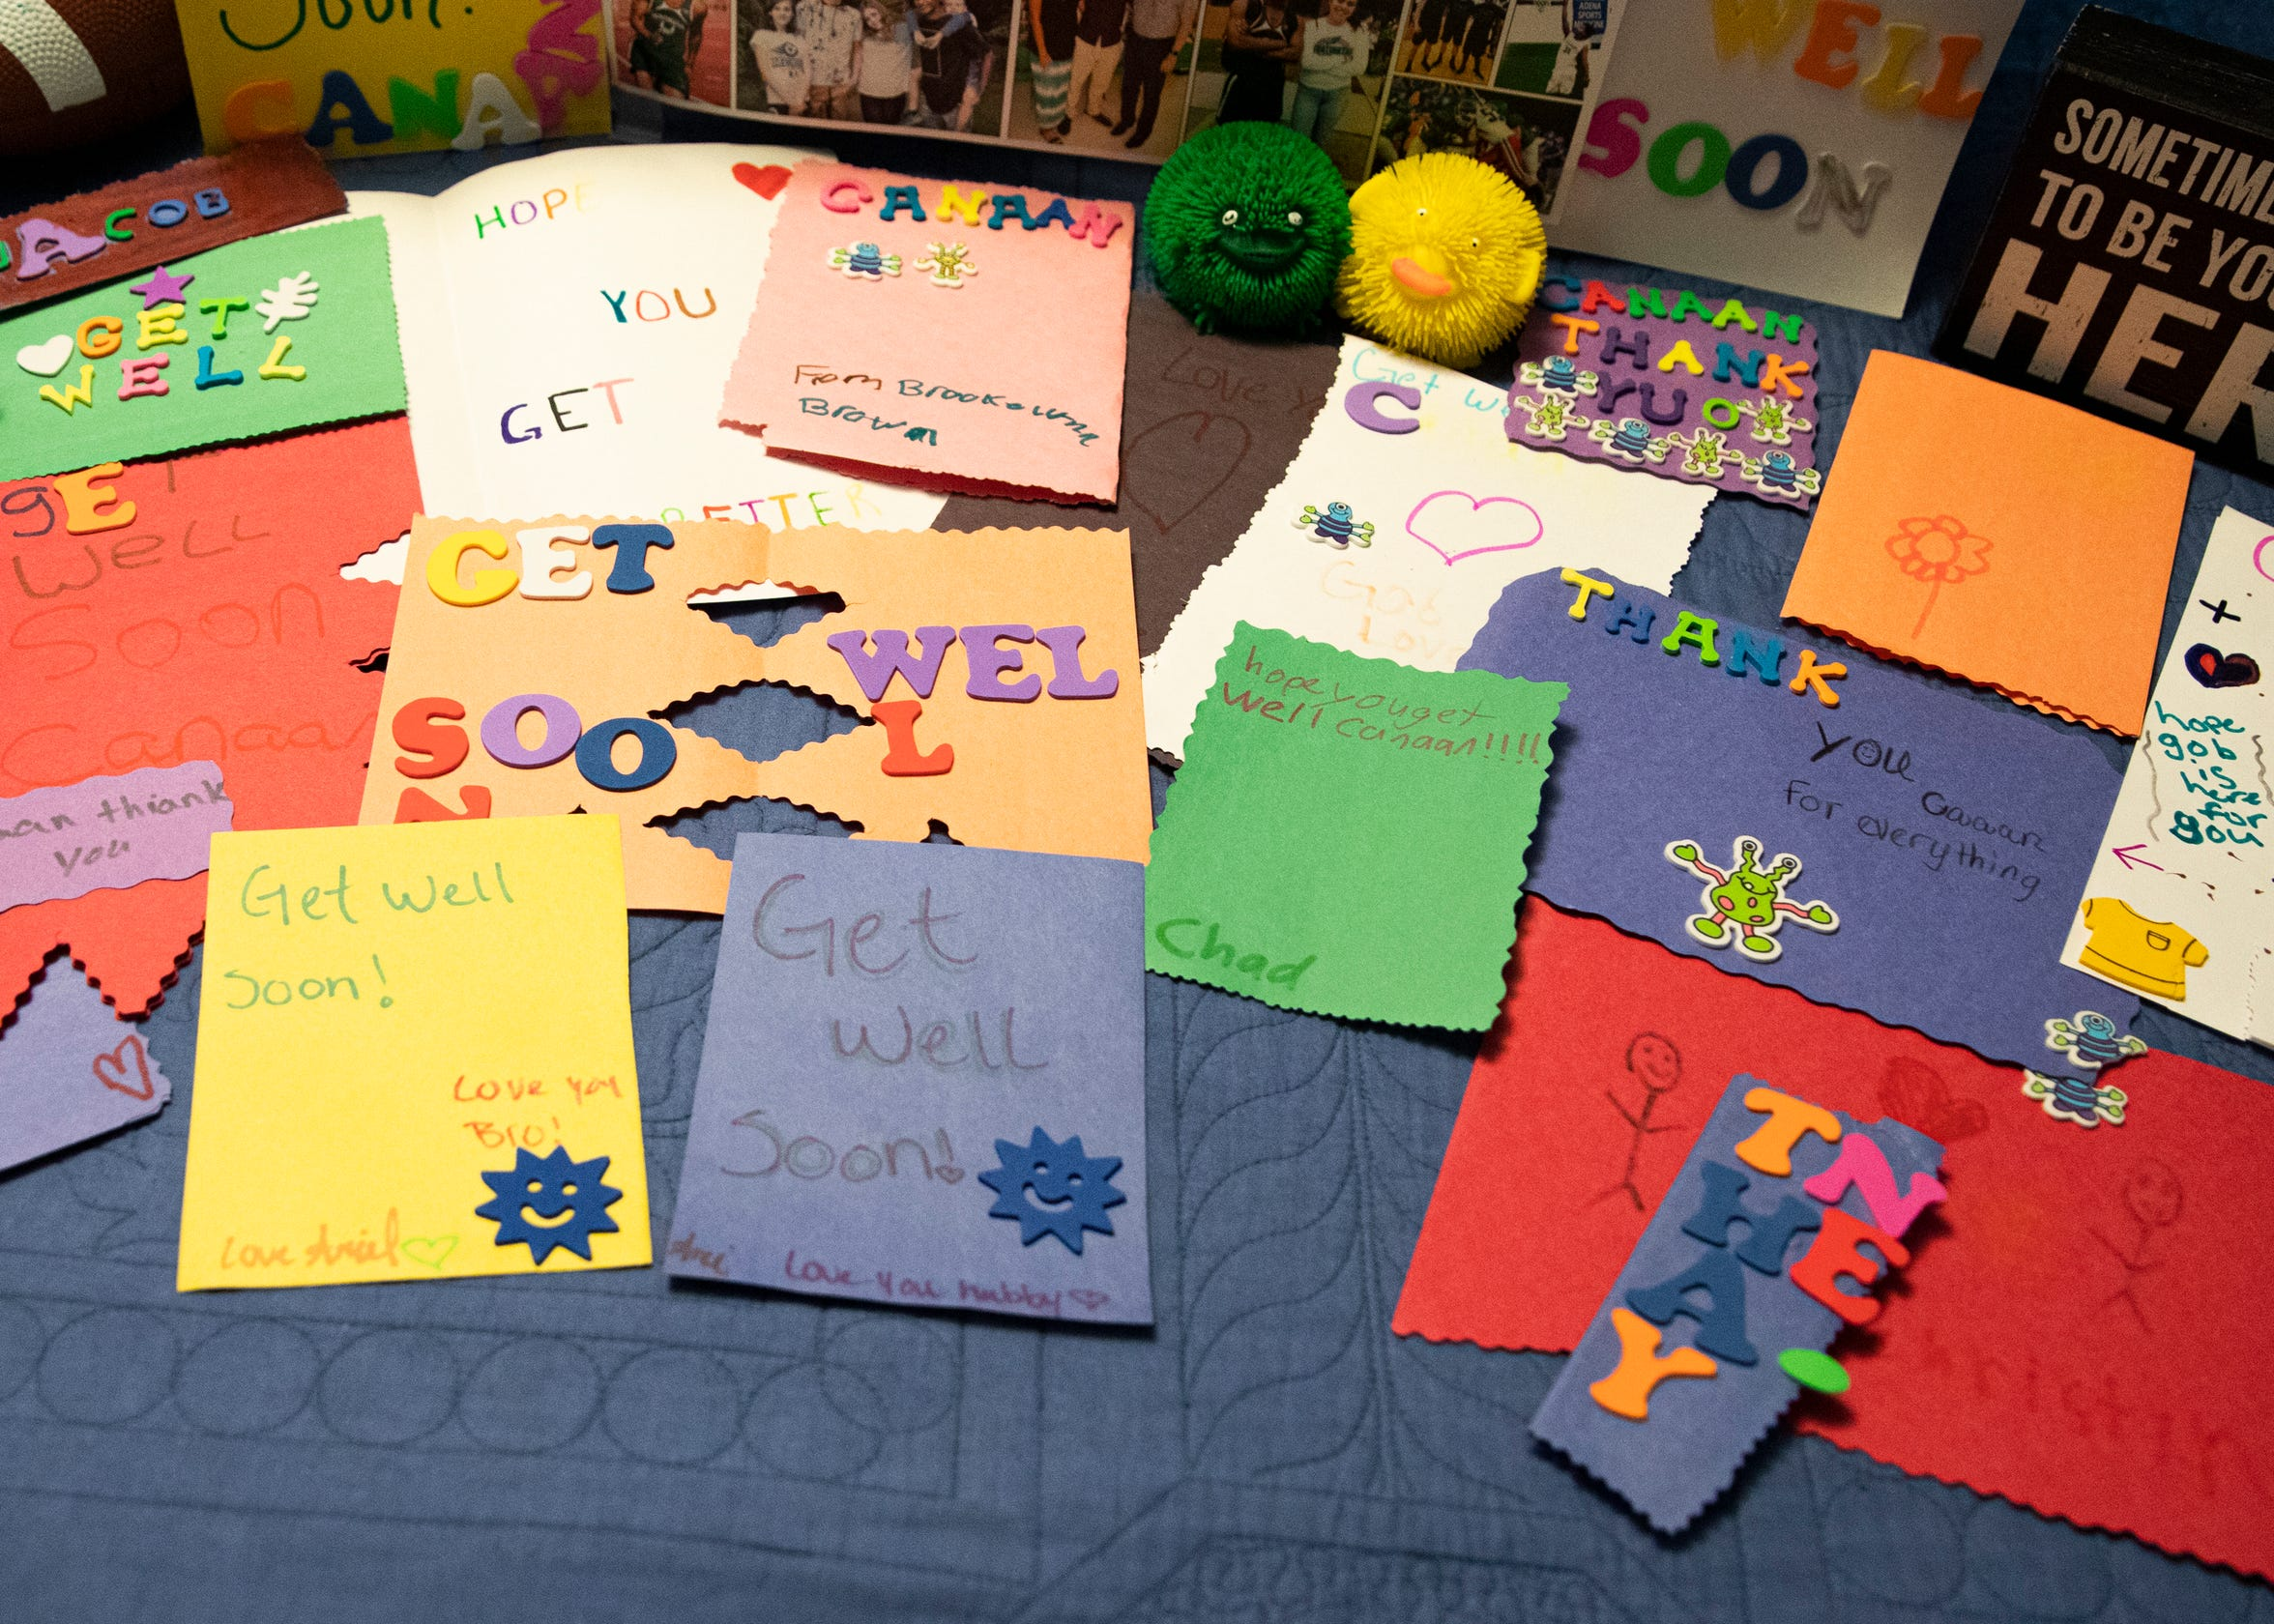 Canaan received so many handwritten decorated get-well cards from kids at the camp where he worked and had his tragic accident in July.